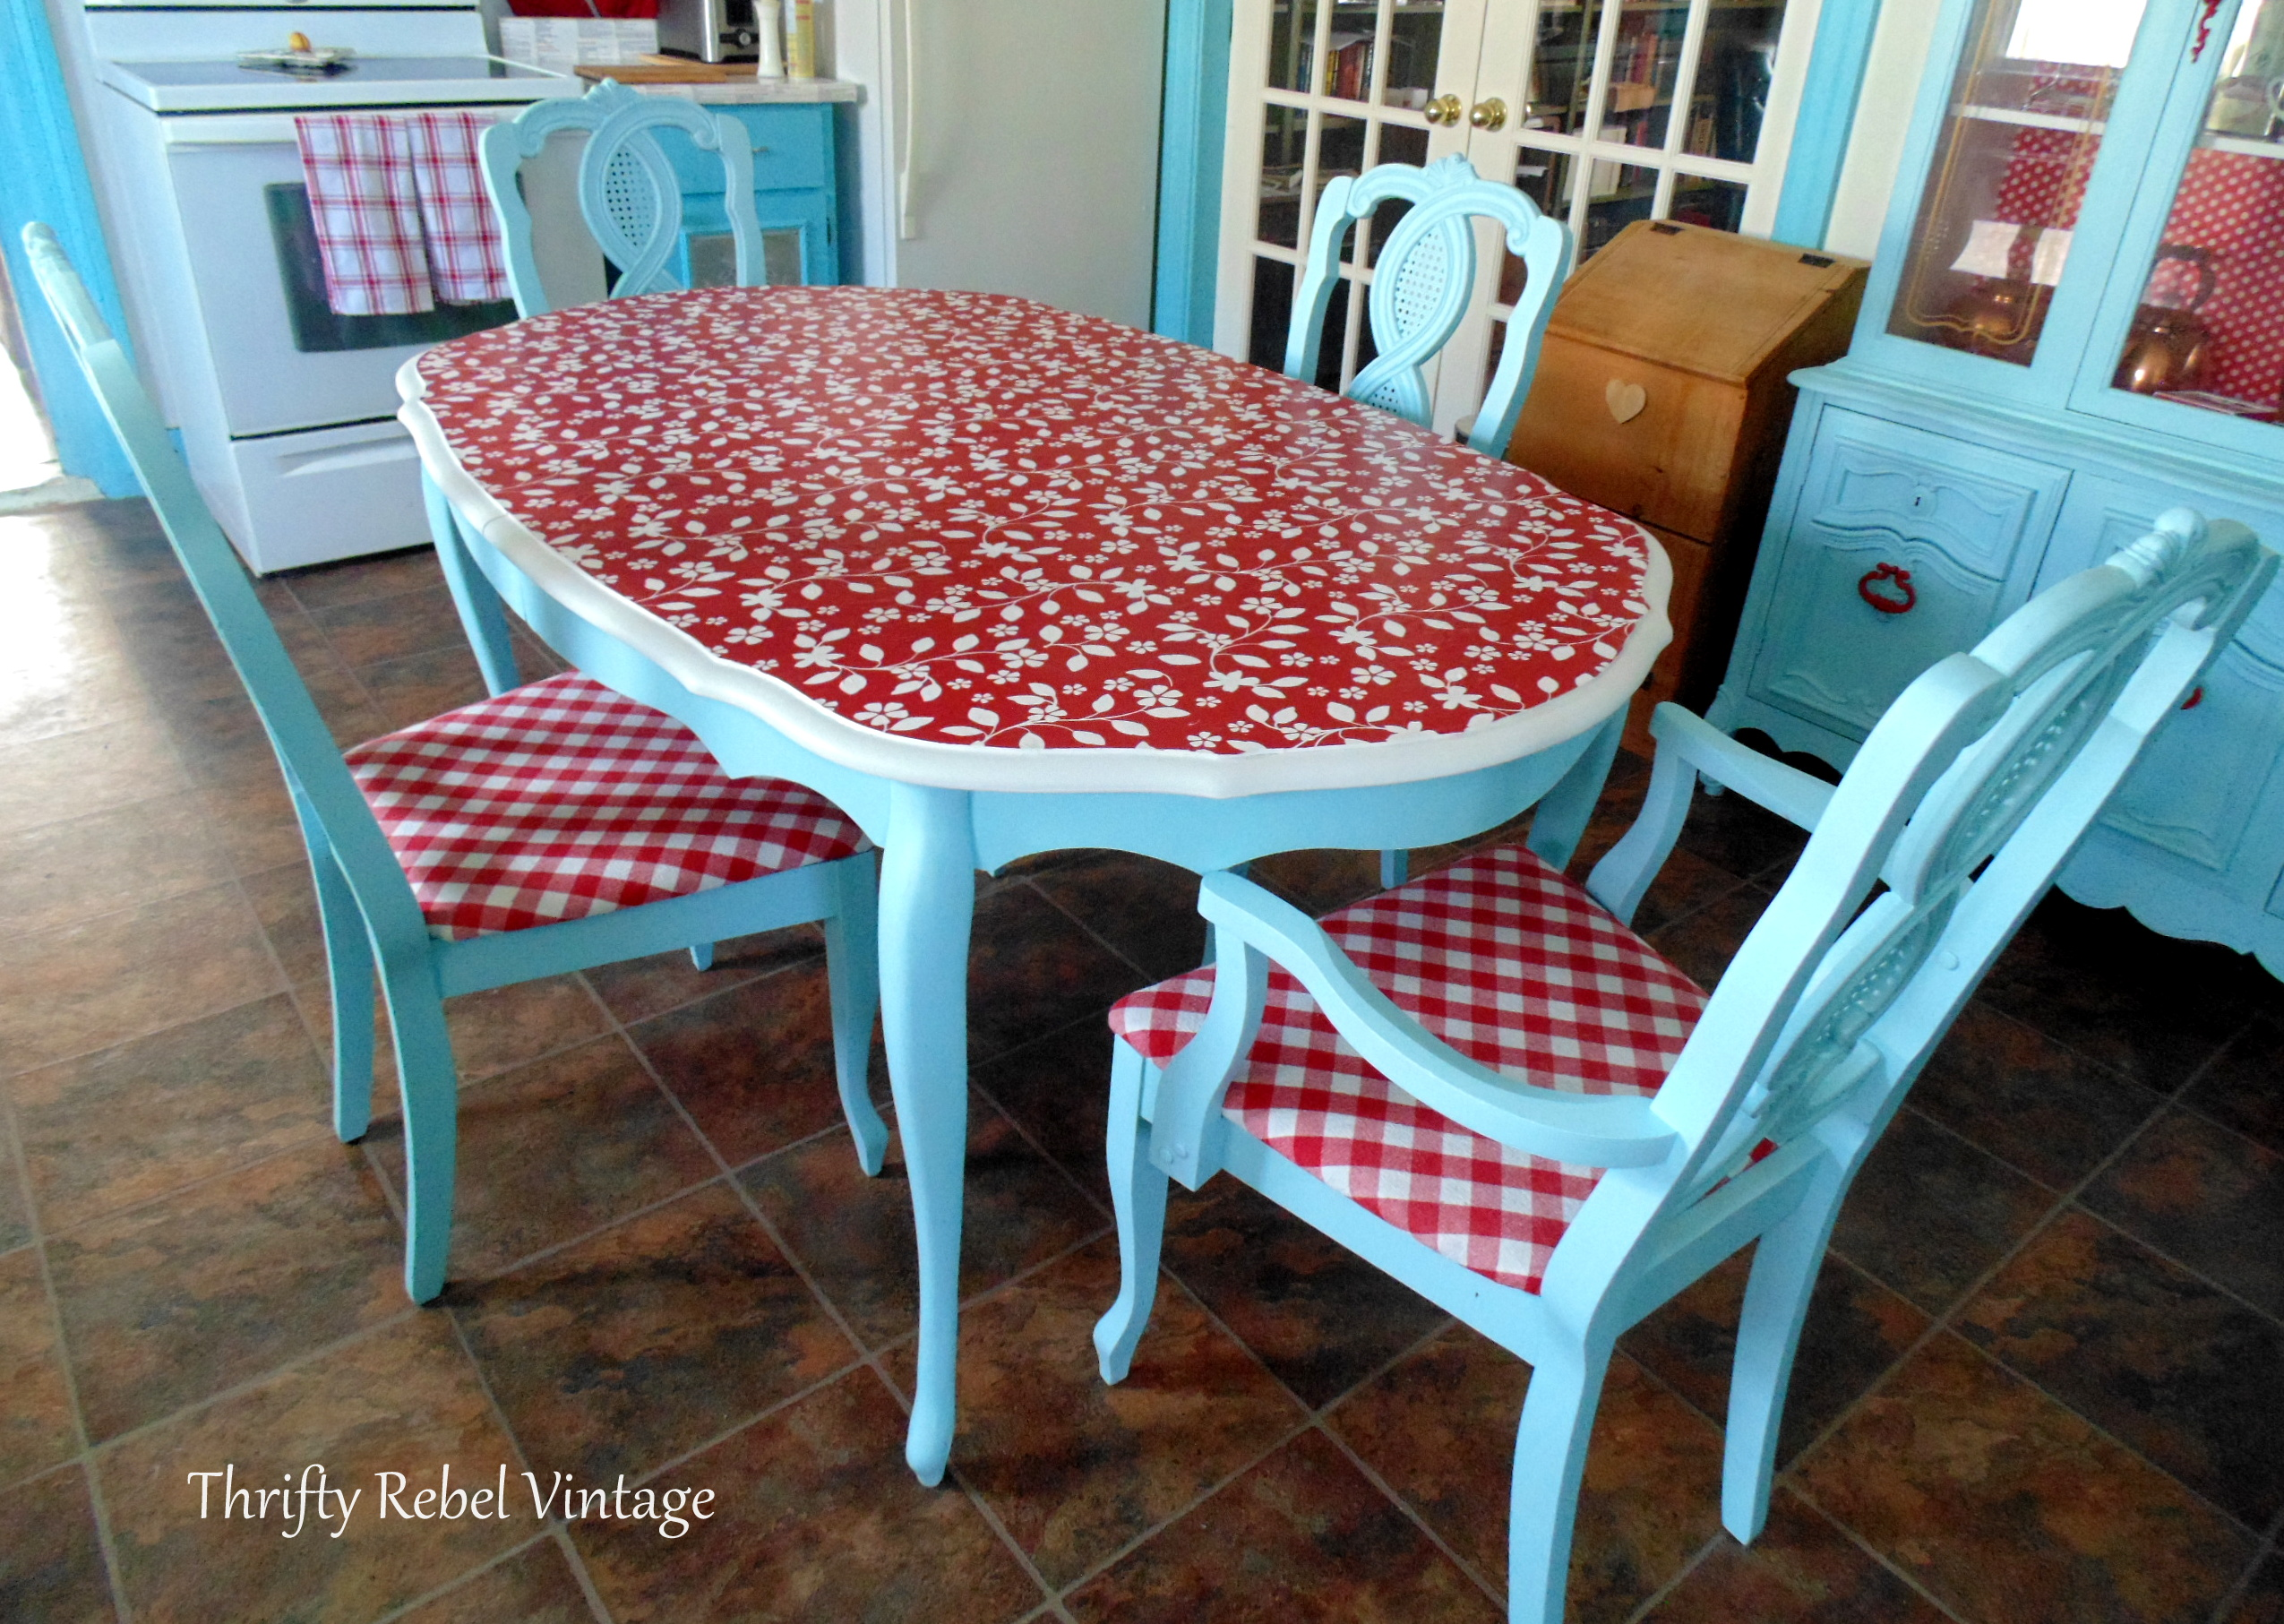 Decoupaged Vinyl Tablecloth Kitchen Table Makeover